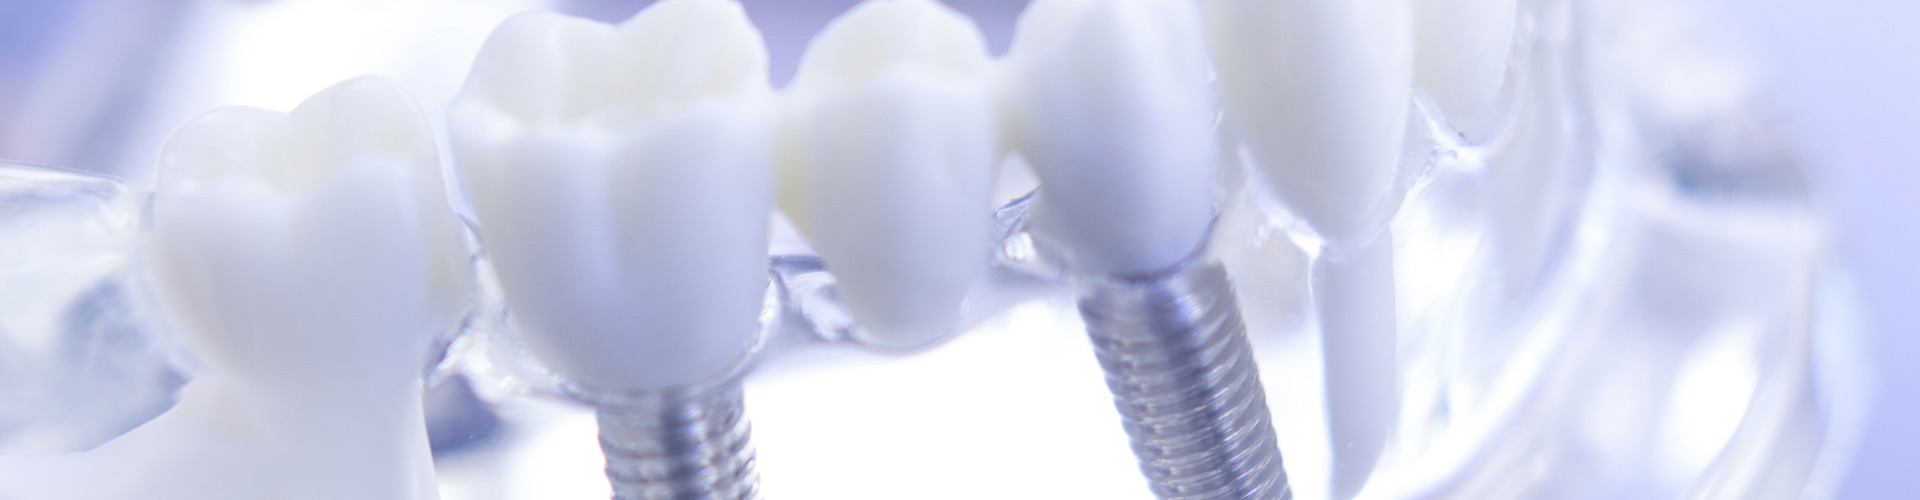 All-on-4 Dental Implants Elk Grove, CA